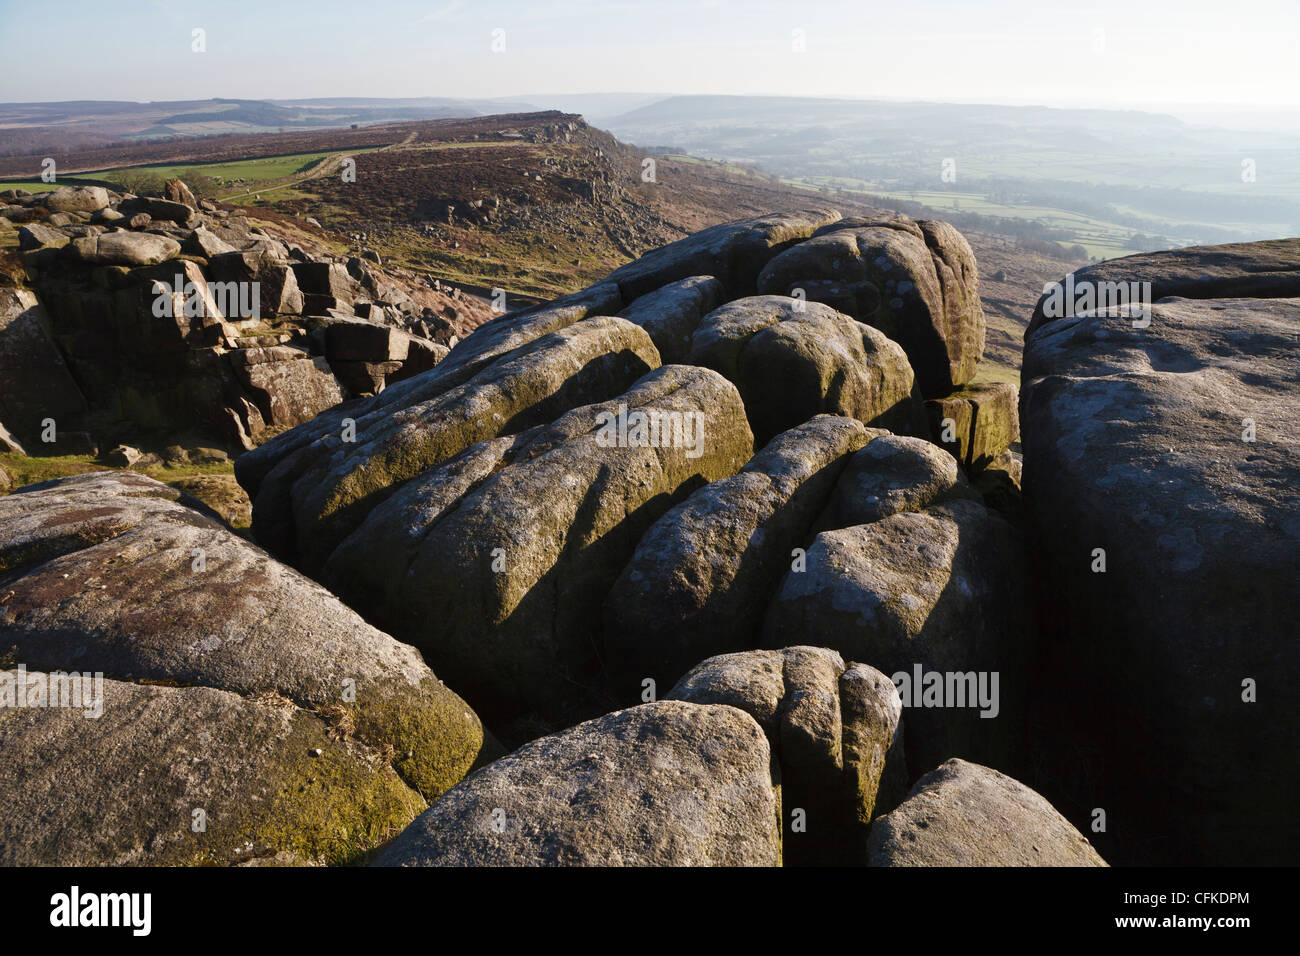 Curbar Edge, Peak District National Park, Derbyshire, England - Stock Image